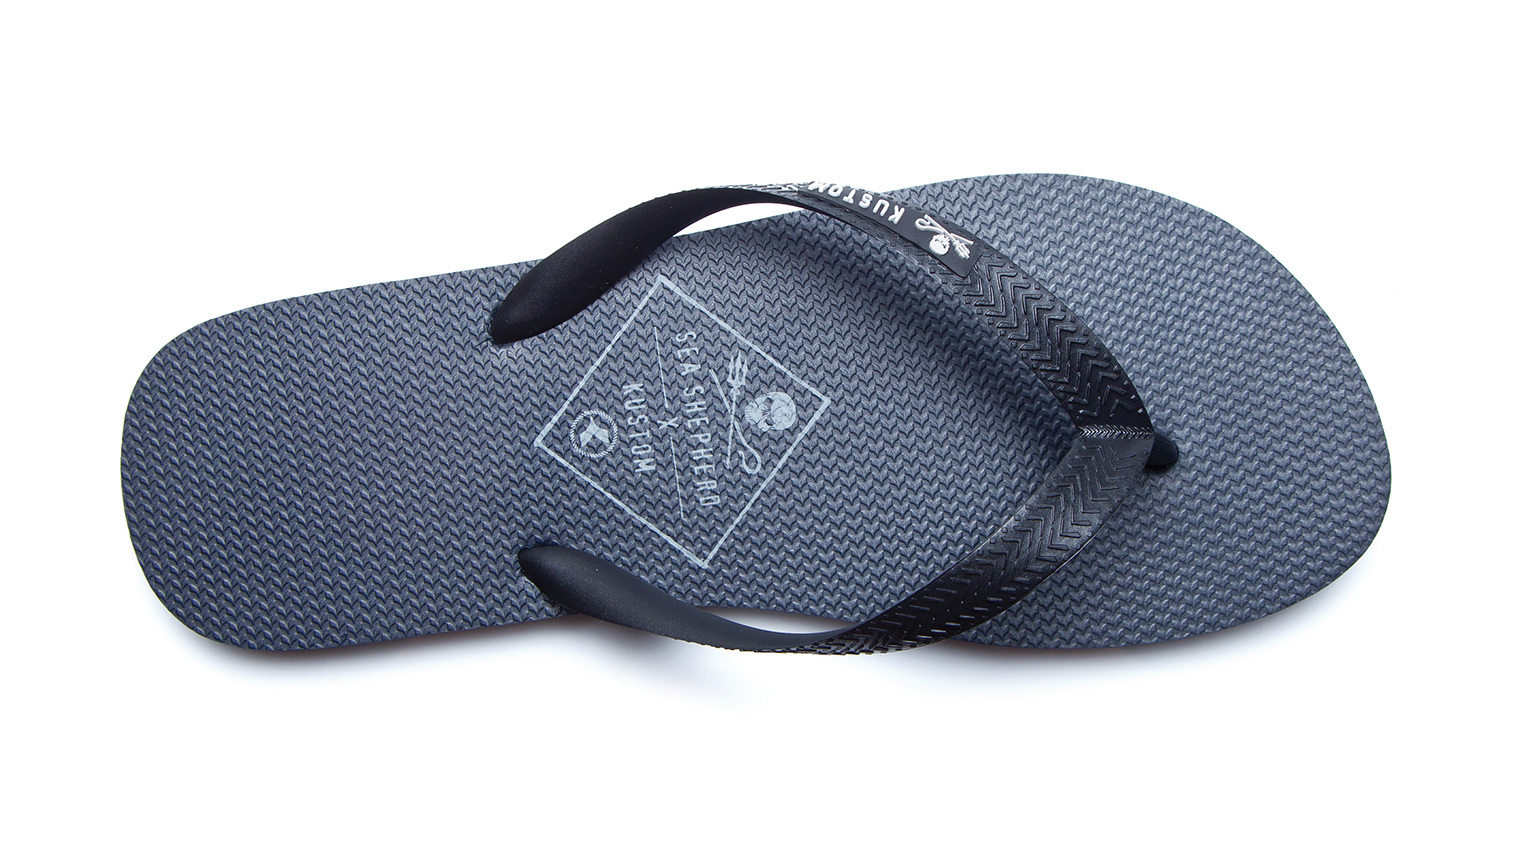 KUSTOM THONGS SEA SHEPHERD THONG / NAVY